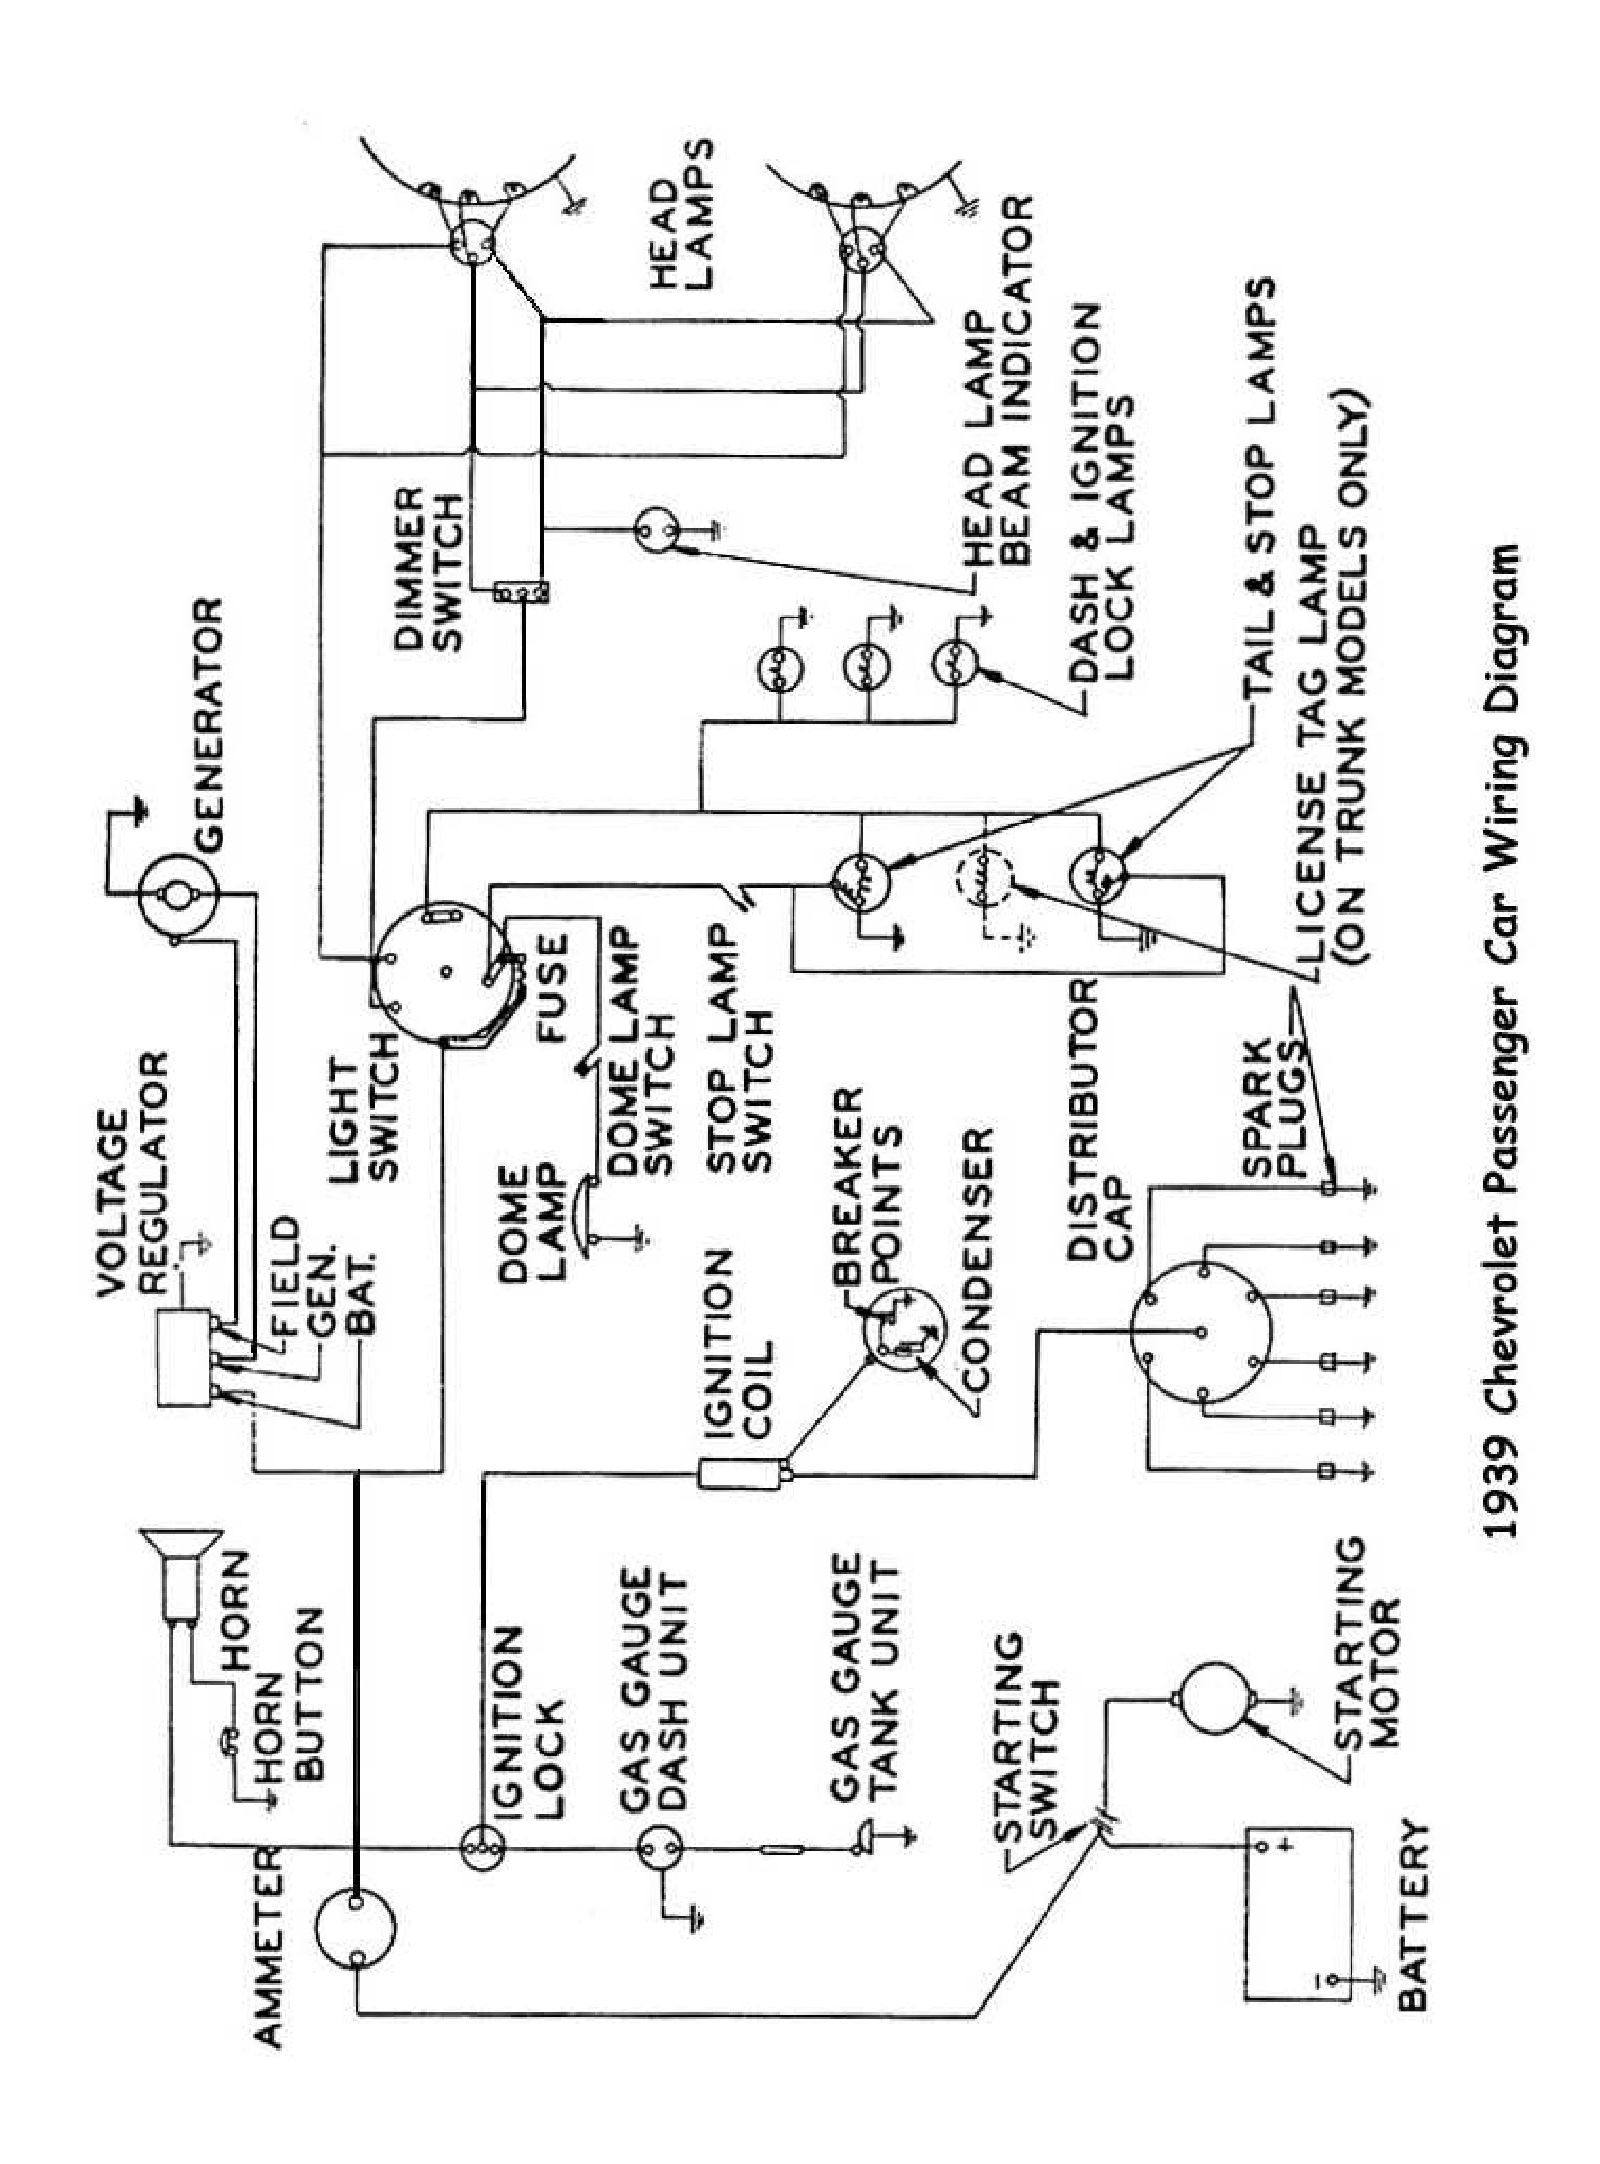 Wiring Diagram for Kmise Pickups to Switch Chevy Wiring Diagrams Of Wiring Diagram for Kmise Pickups to Switch